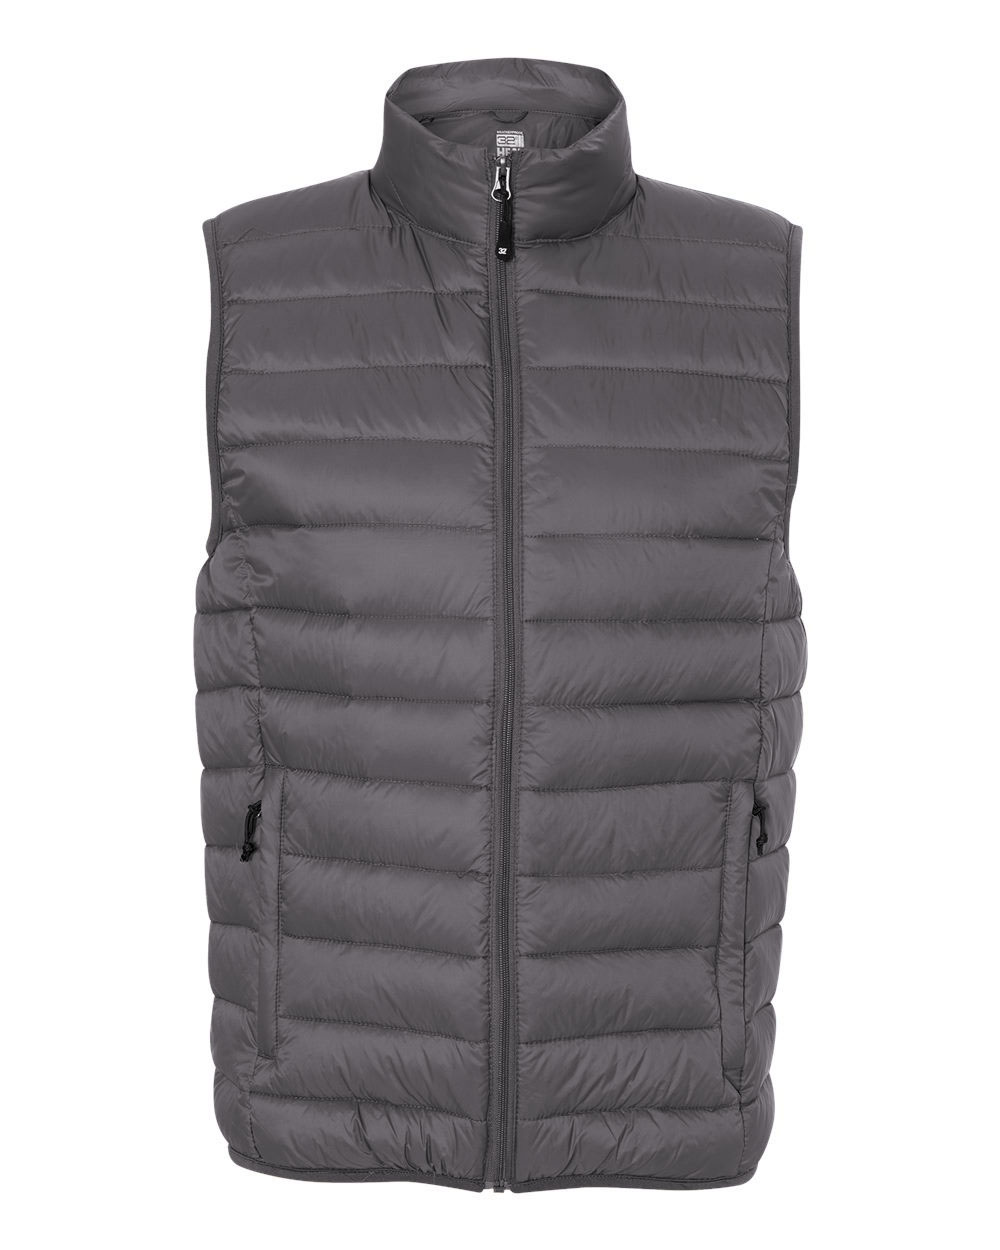 32 Degrees Adult Packable Down Vest